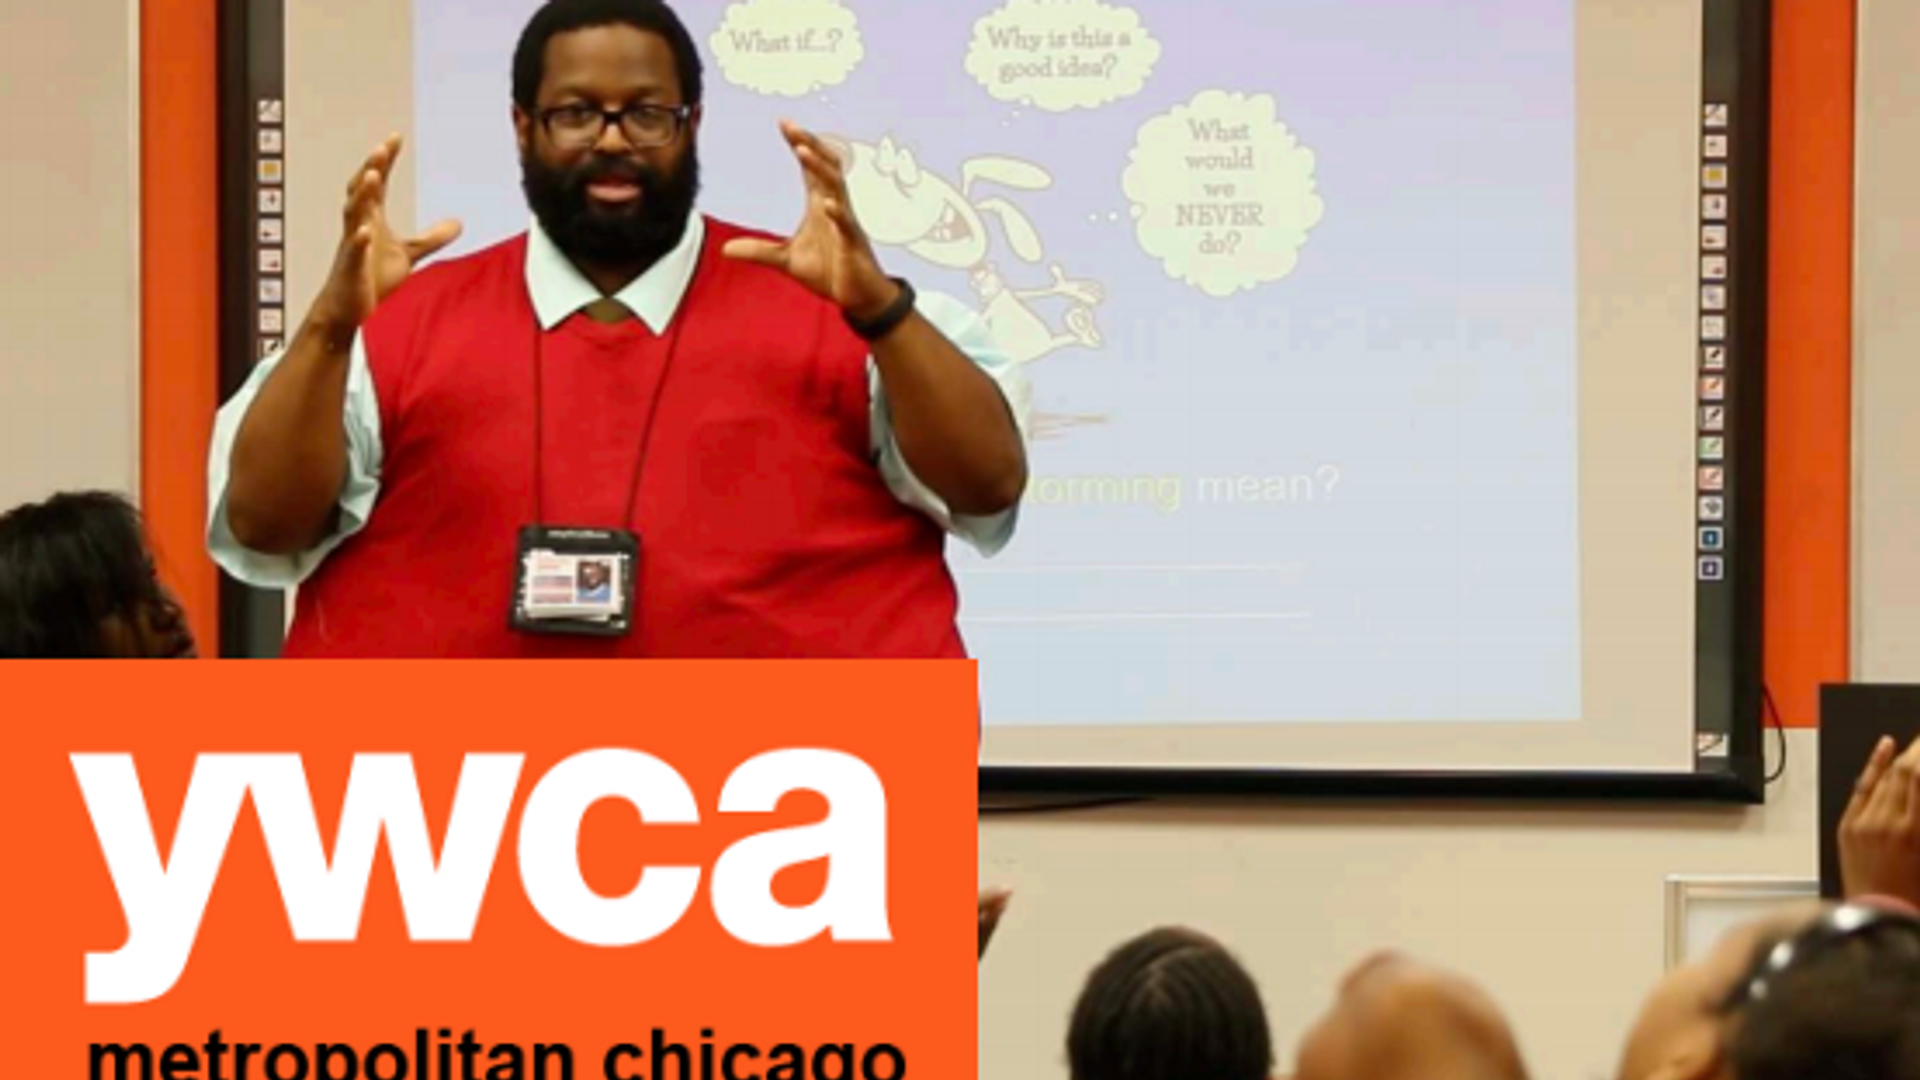 WagiLabs Video from YWCA Chicago